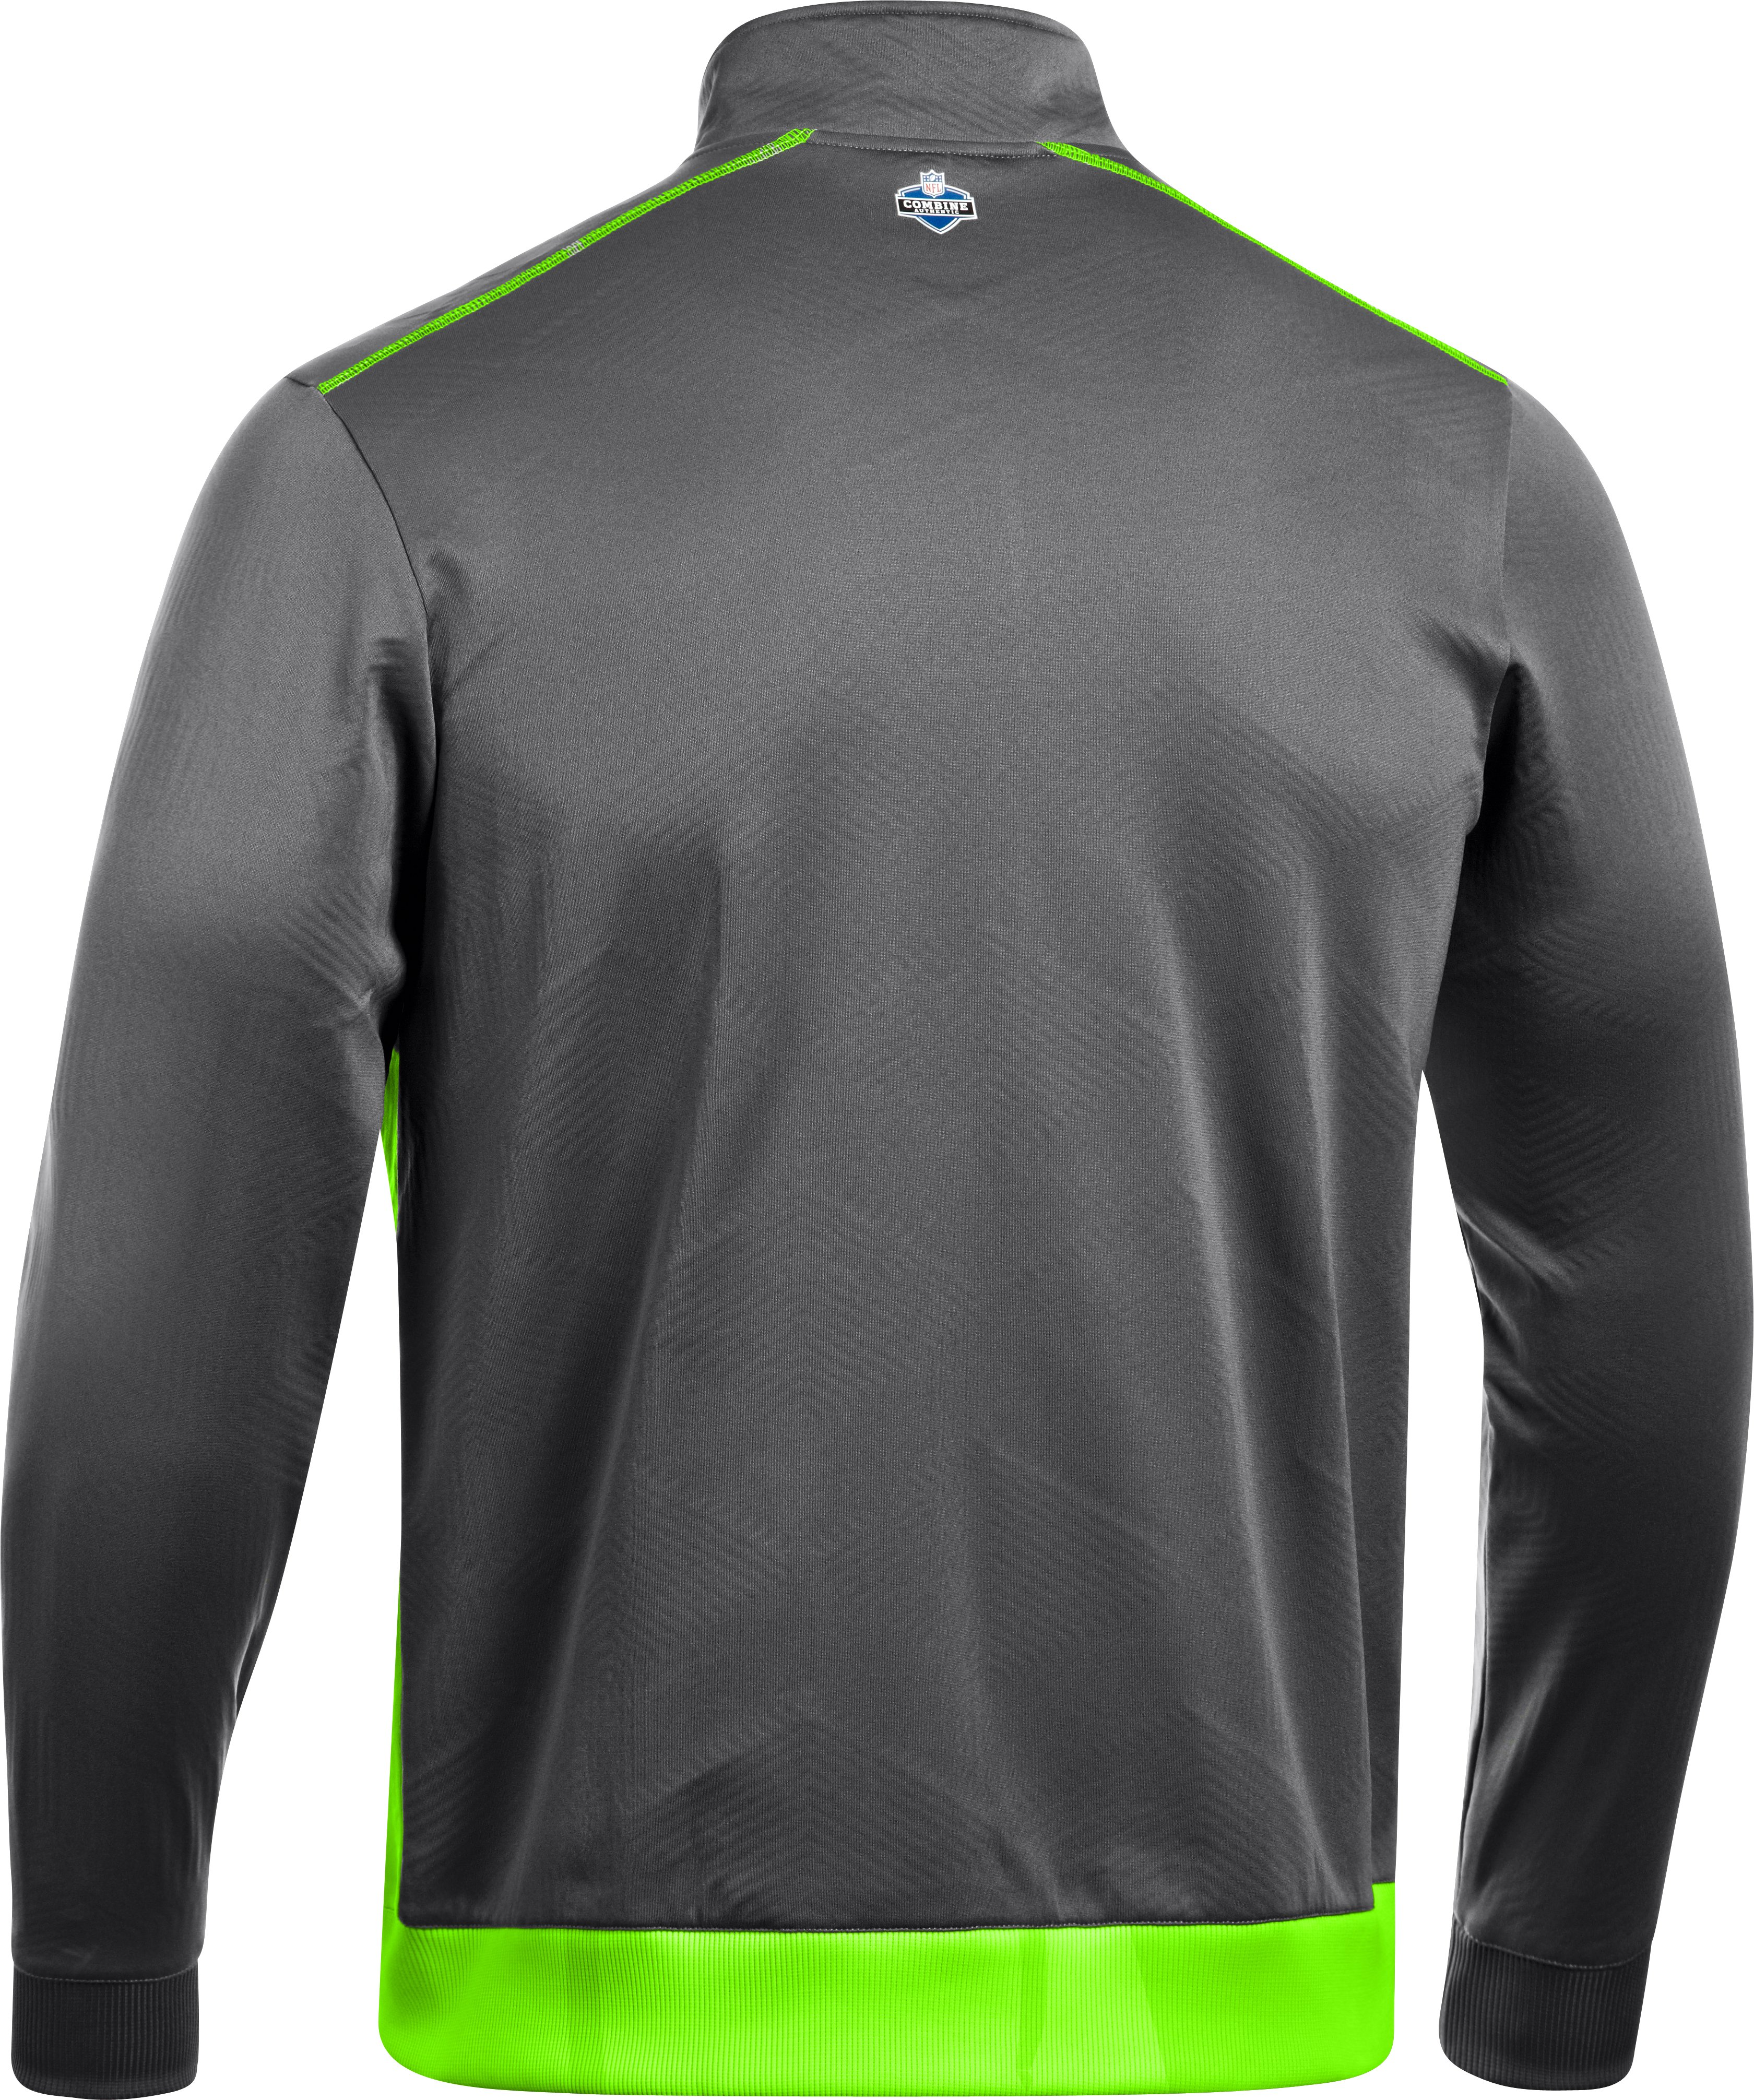 Men's NFL Combine Authentic ColdGear® Infrared Warm-Up Jacket, Graphite